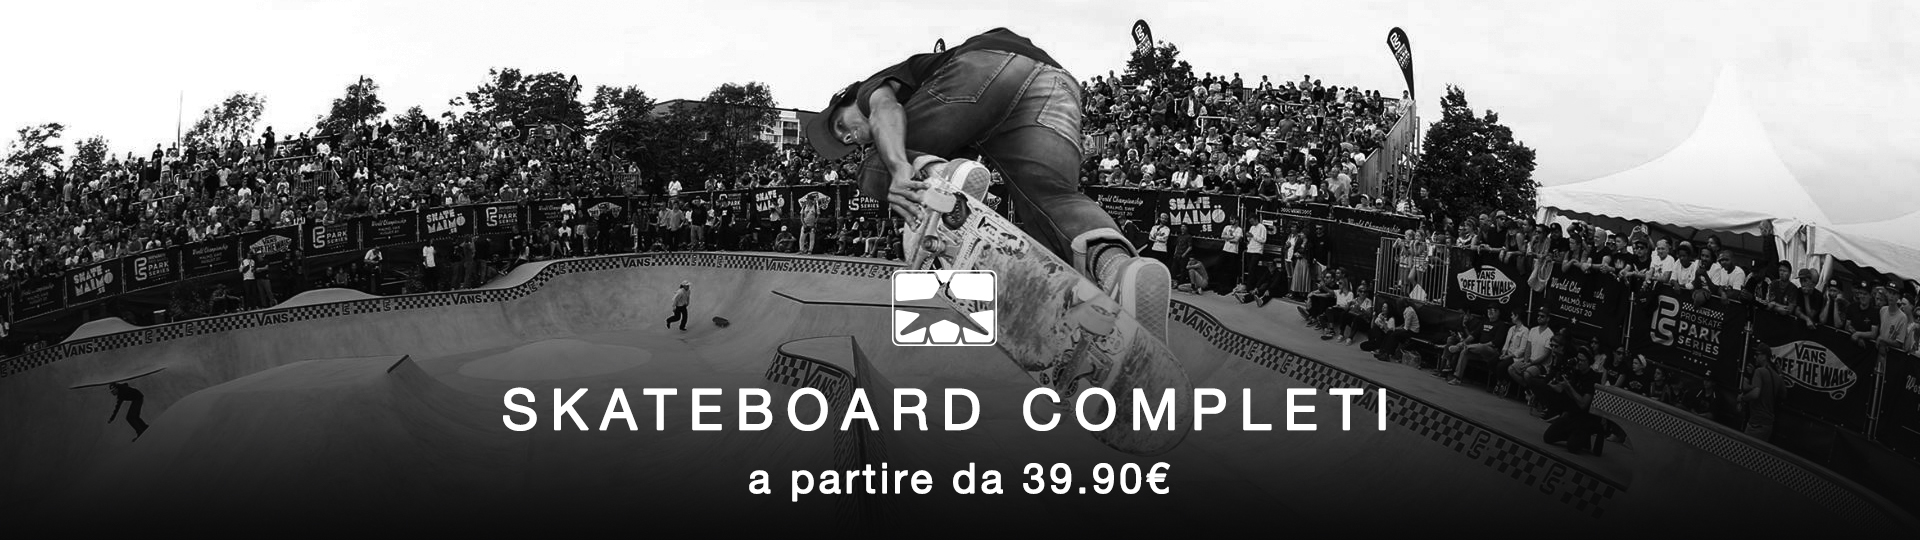 Minoia Board Co. Skateboard e surfskate